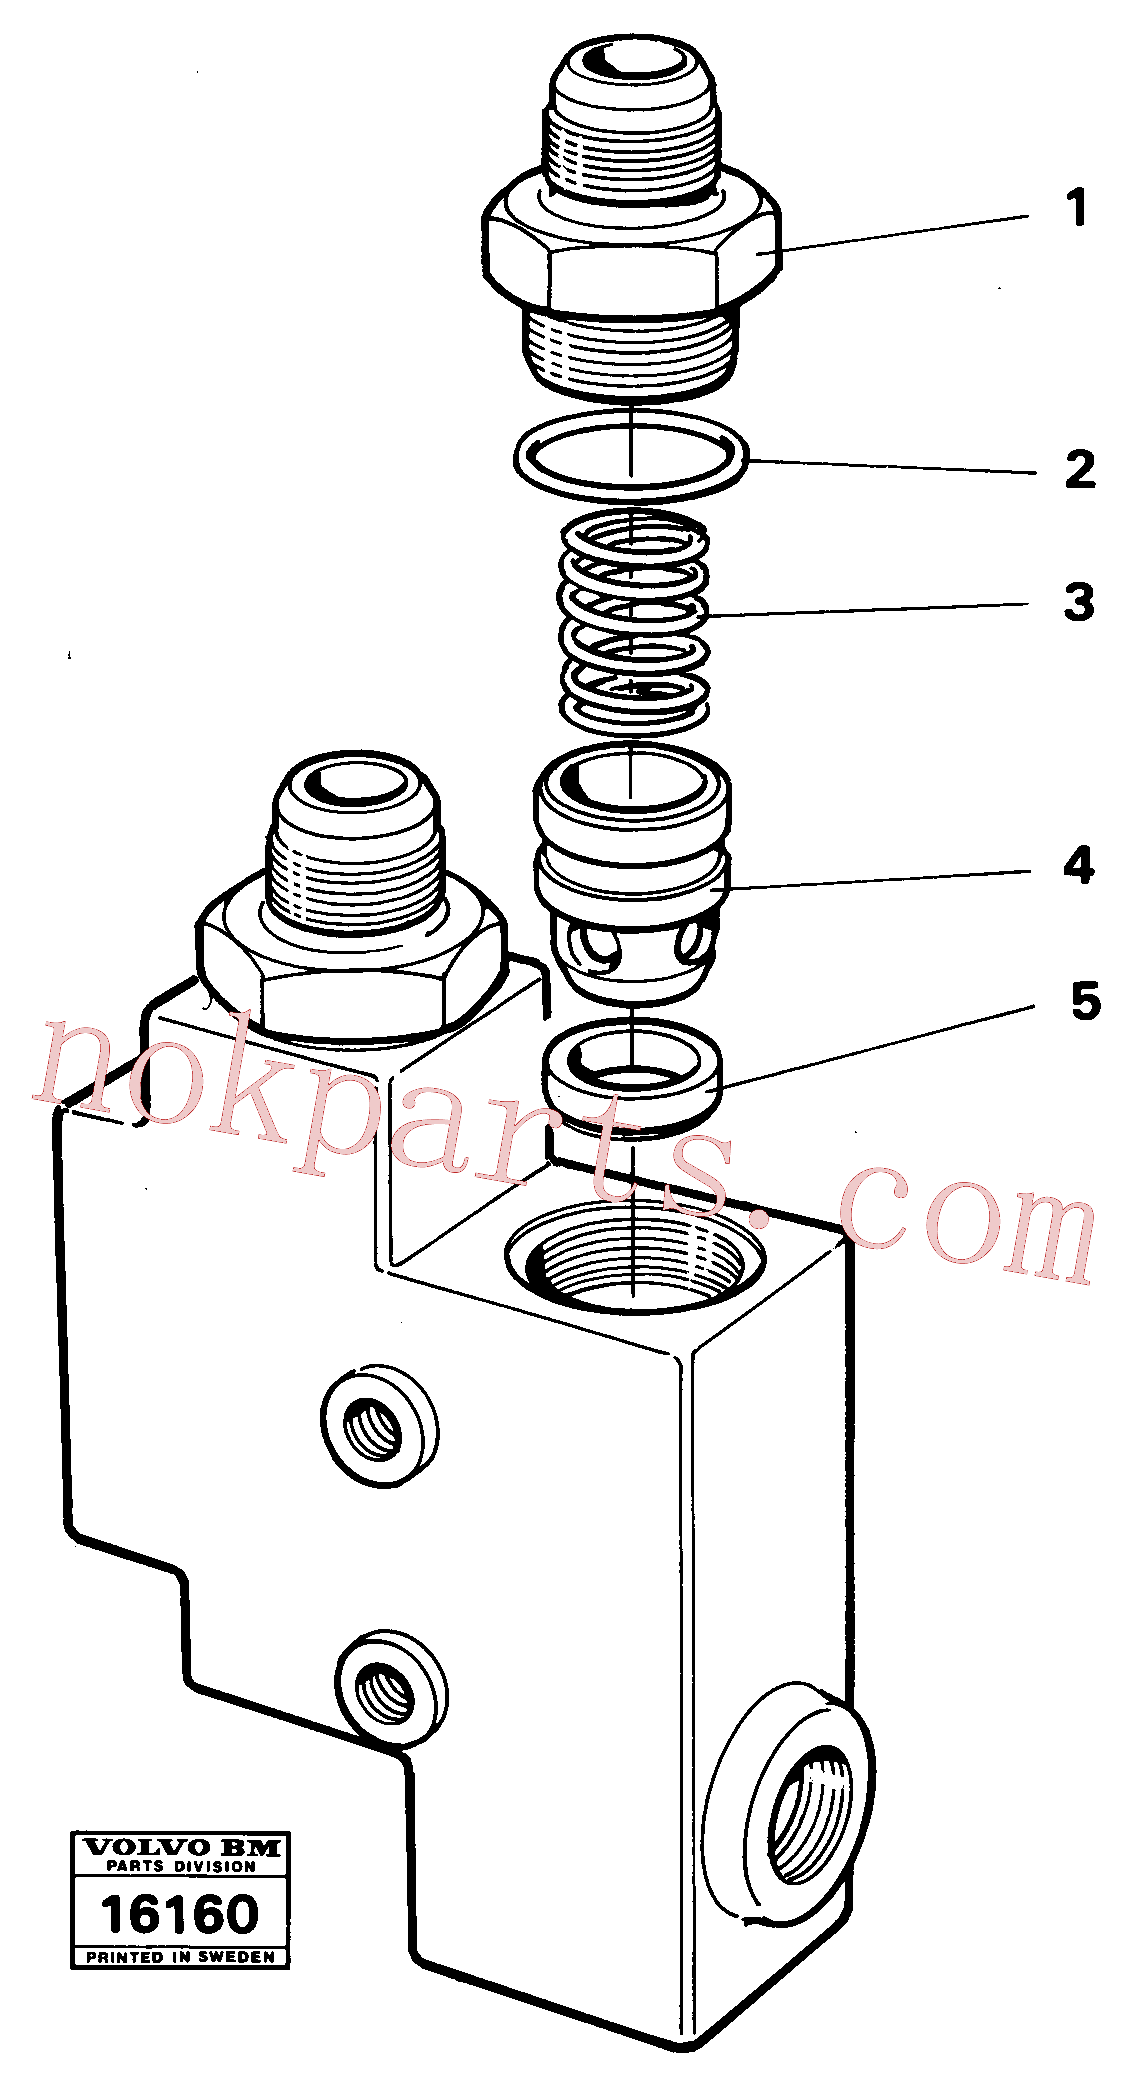 VOE1522550 for Volvo Check valve(16160 assembly)